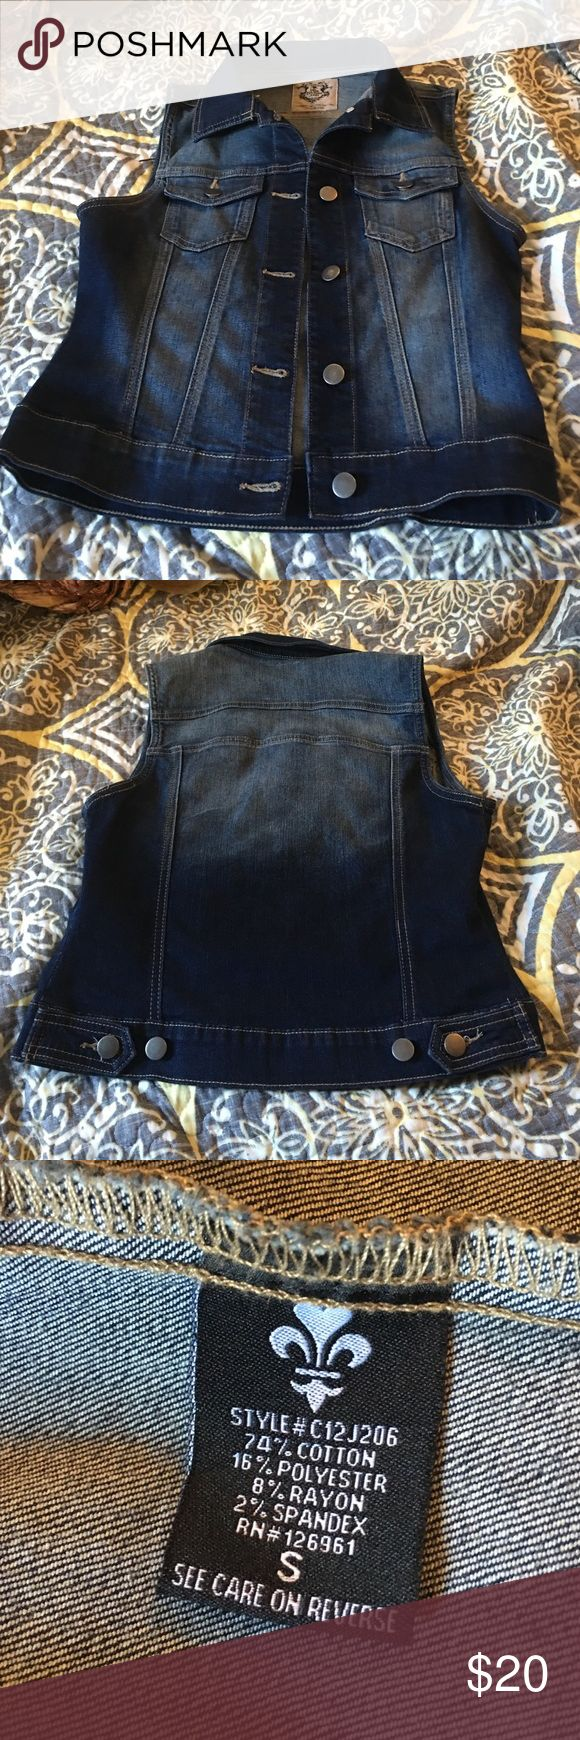 Short sleeves jean jacket Excellent condition Jean jacket Love Culture Jackets & Coats Jean Jackets